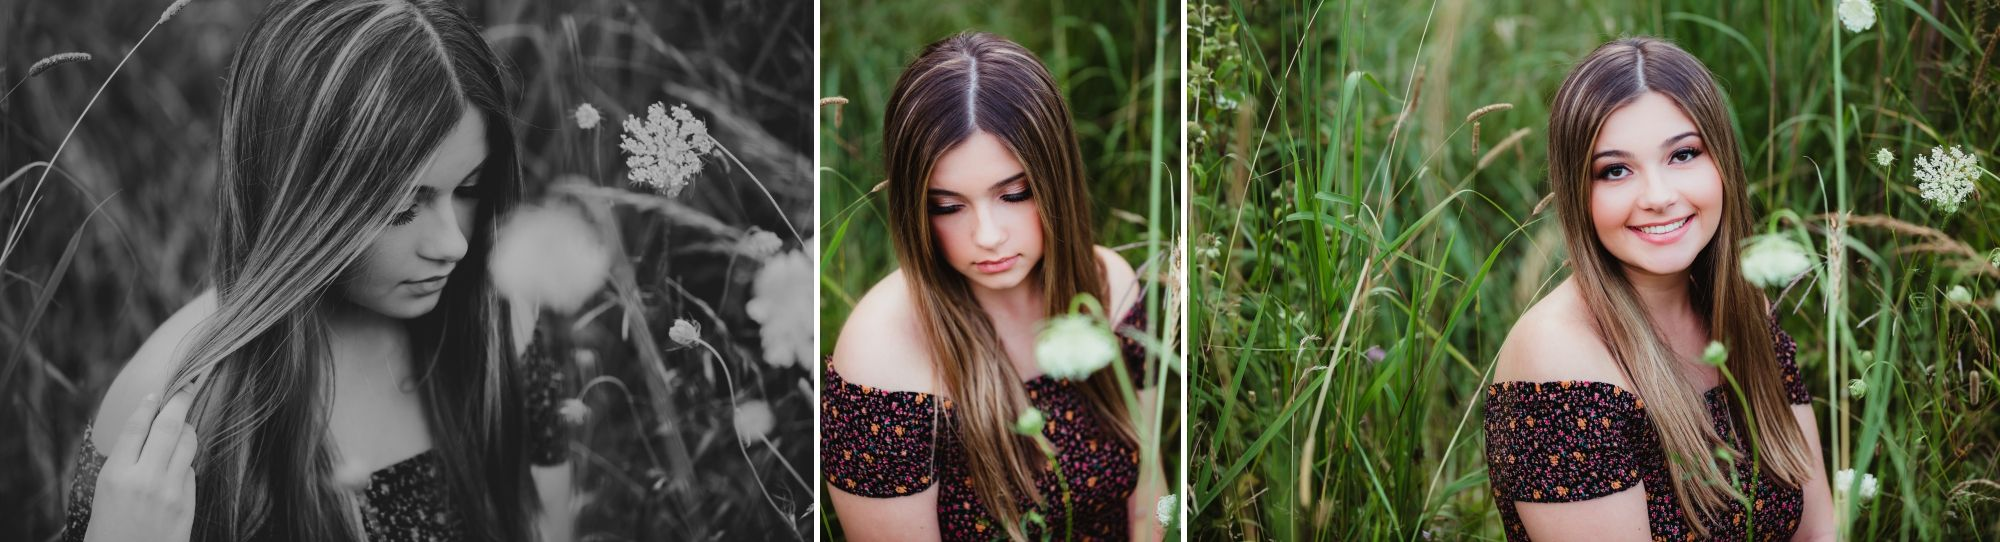 Collage of a high school senior girl sitting in long grass and white flowers. One photo is black and white.